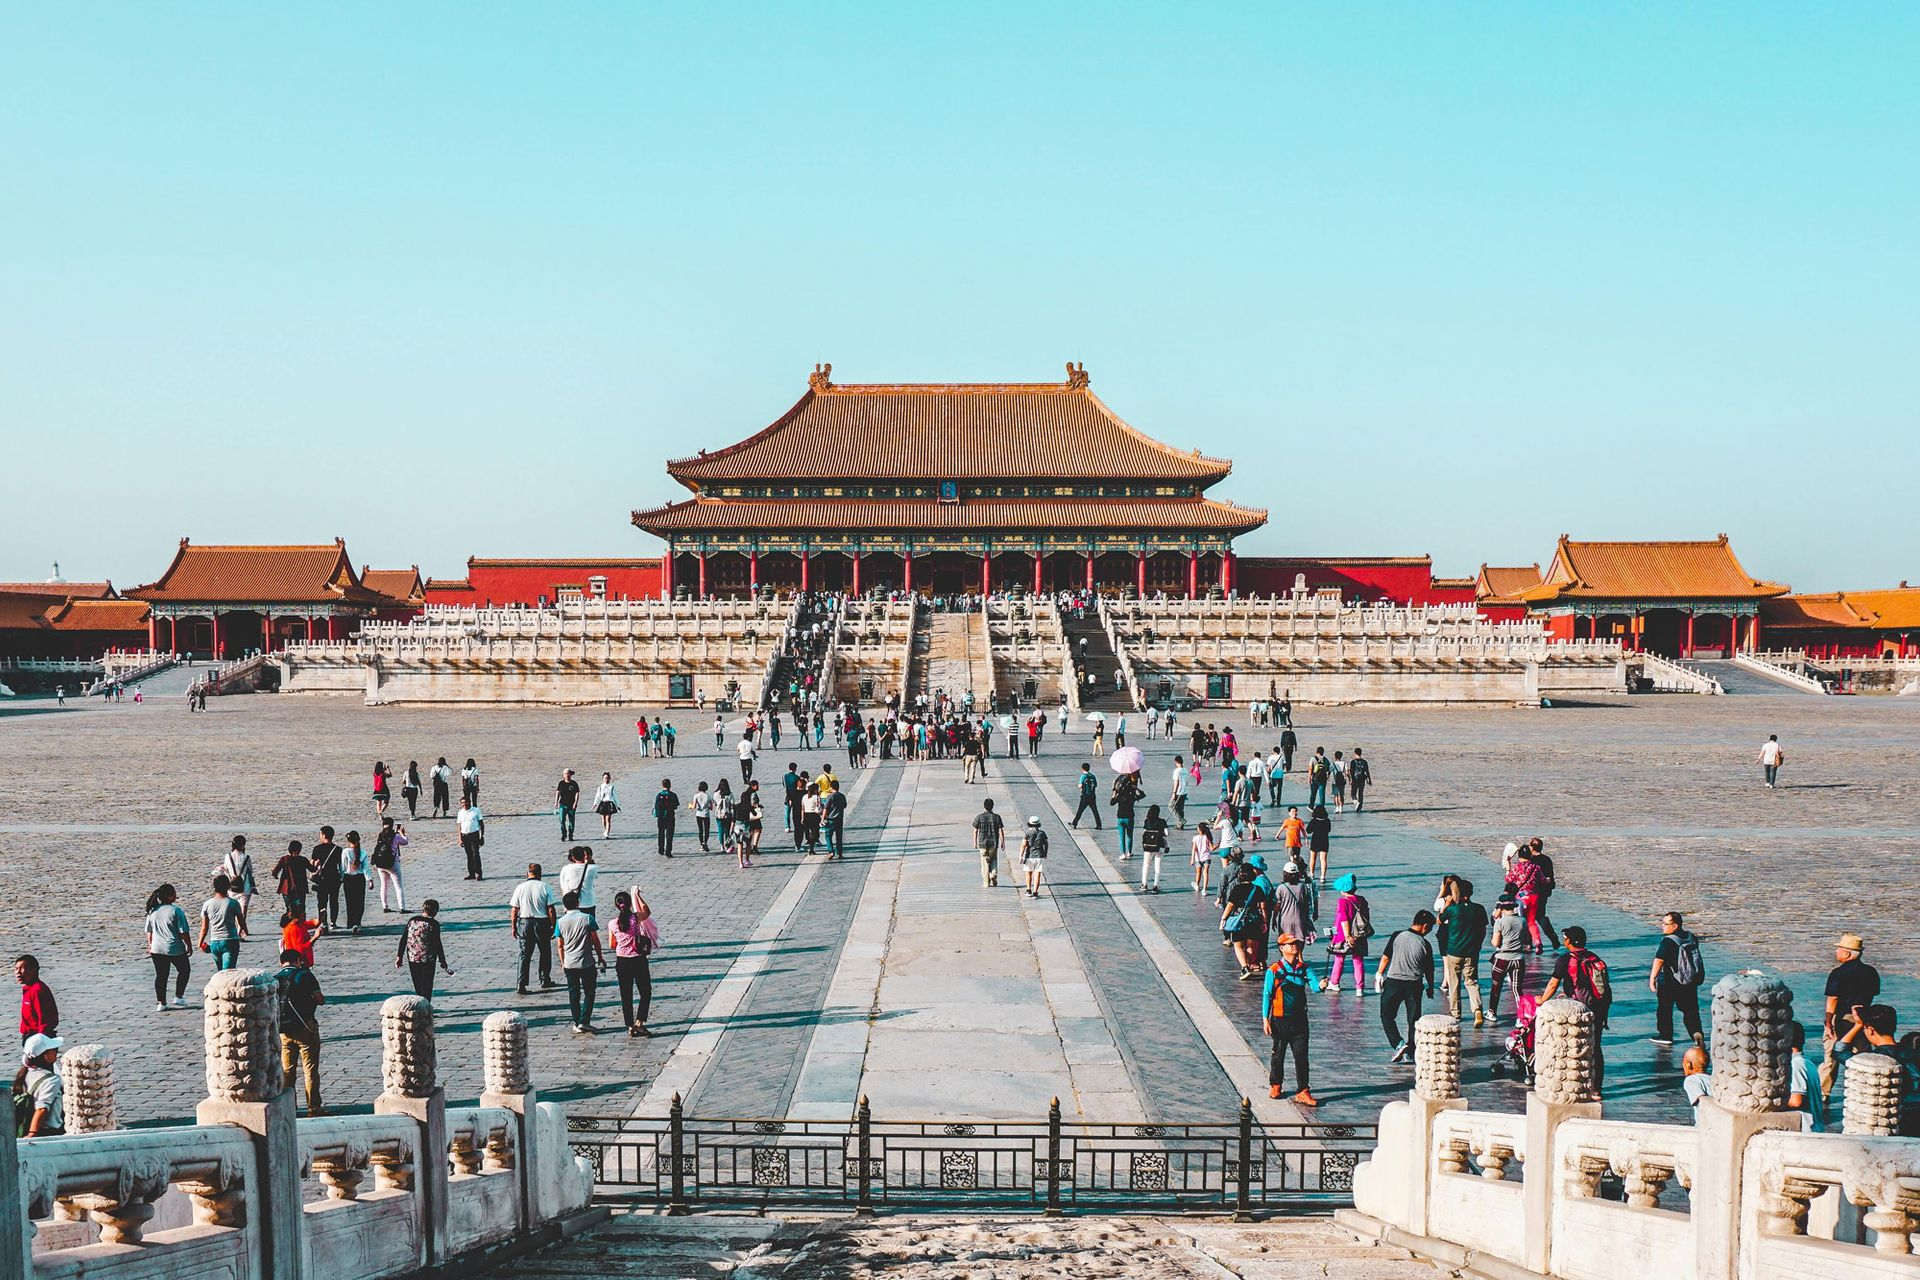 Beijing's Palace Museum or Forbidden City, one of the China's top attractions, will limit visitor numbers to 5,000 a day from 1 May © Ling Tang